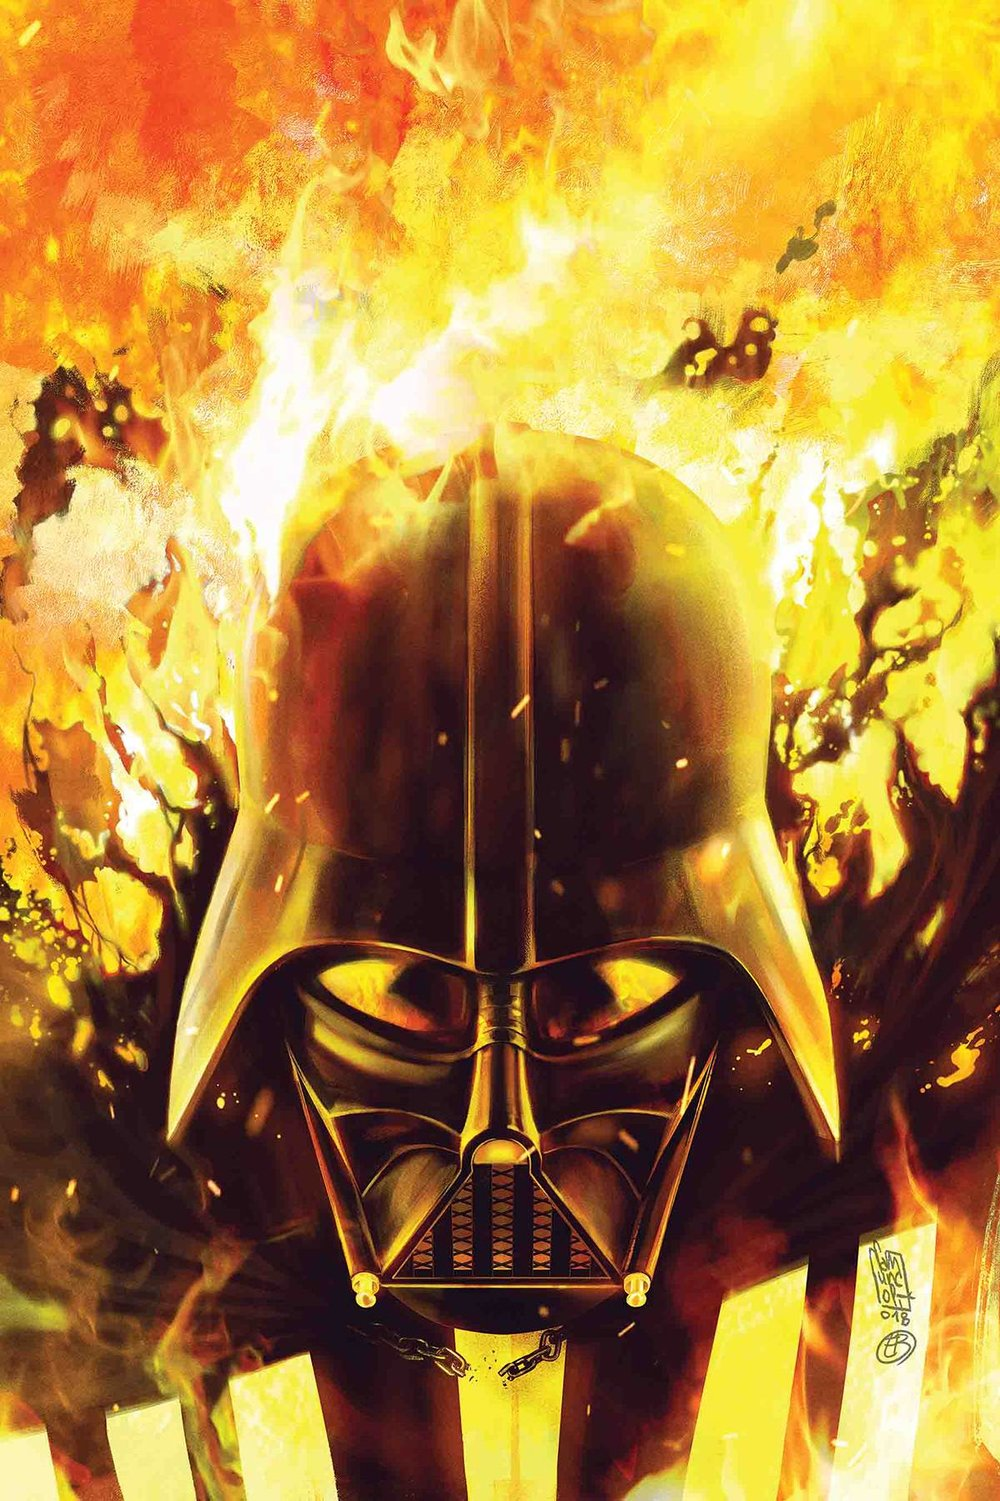 STAR WARS DARTH VADER 24.jpg